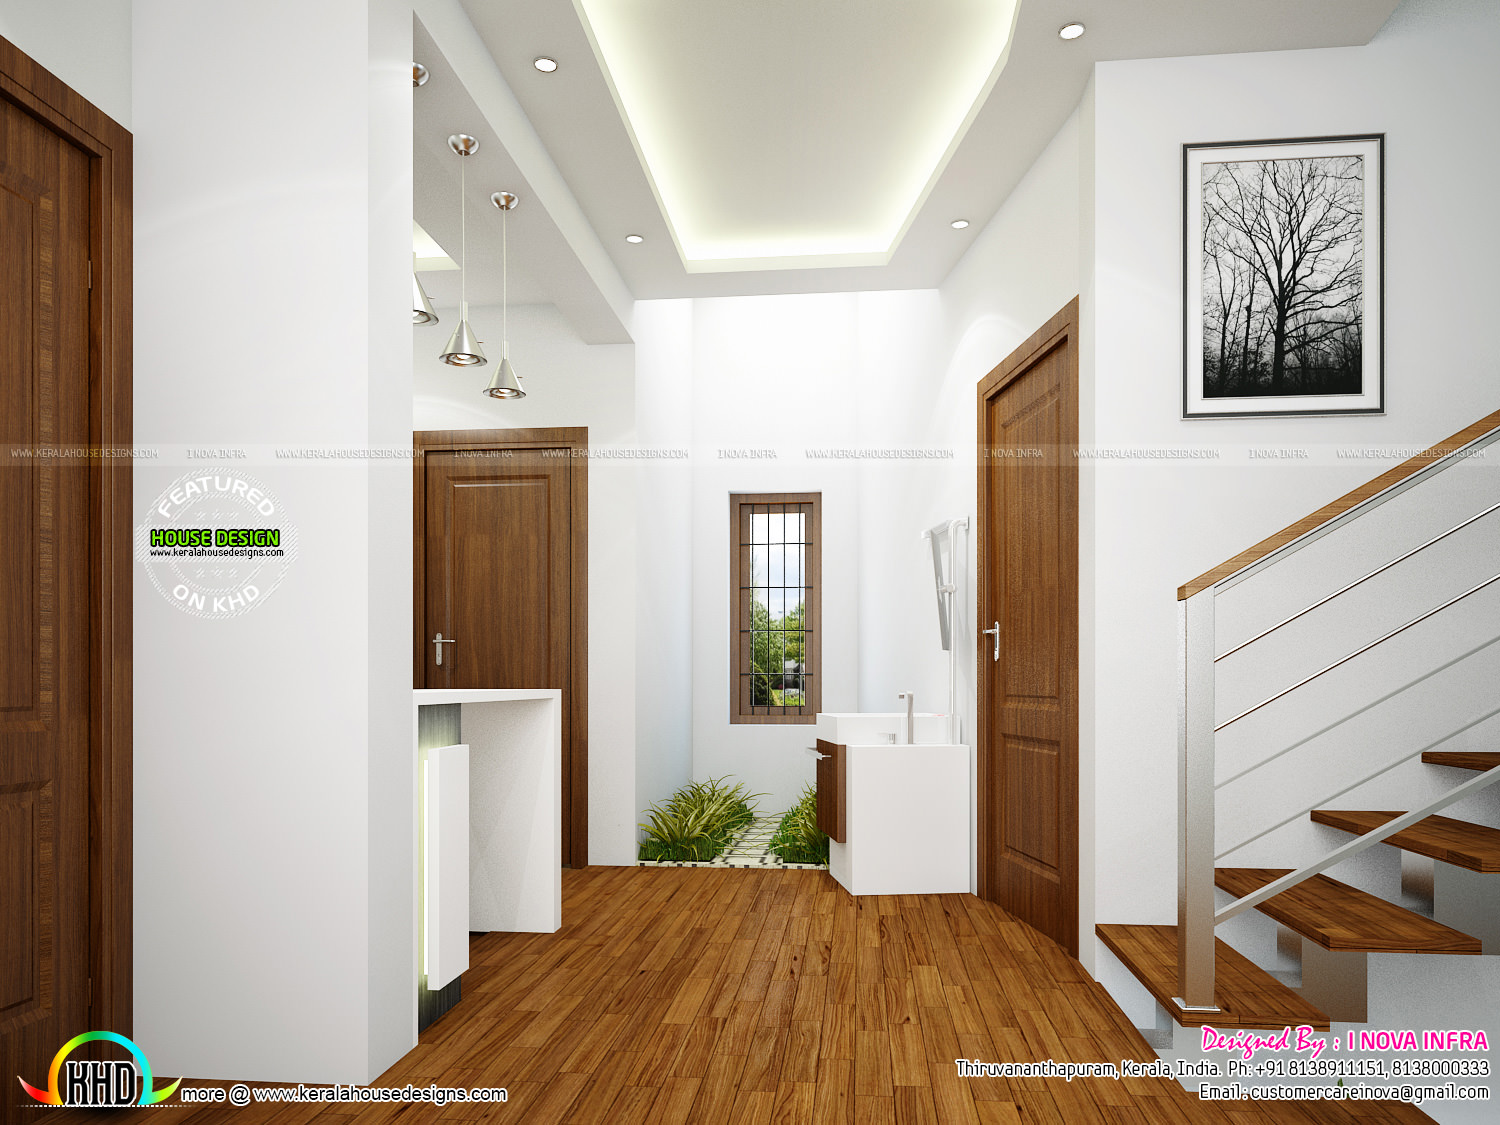 New Classical Interior Works At Trivandrum